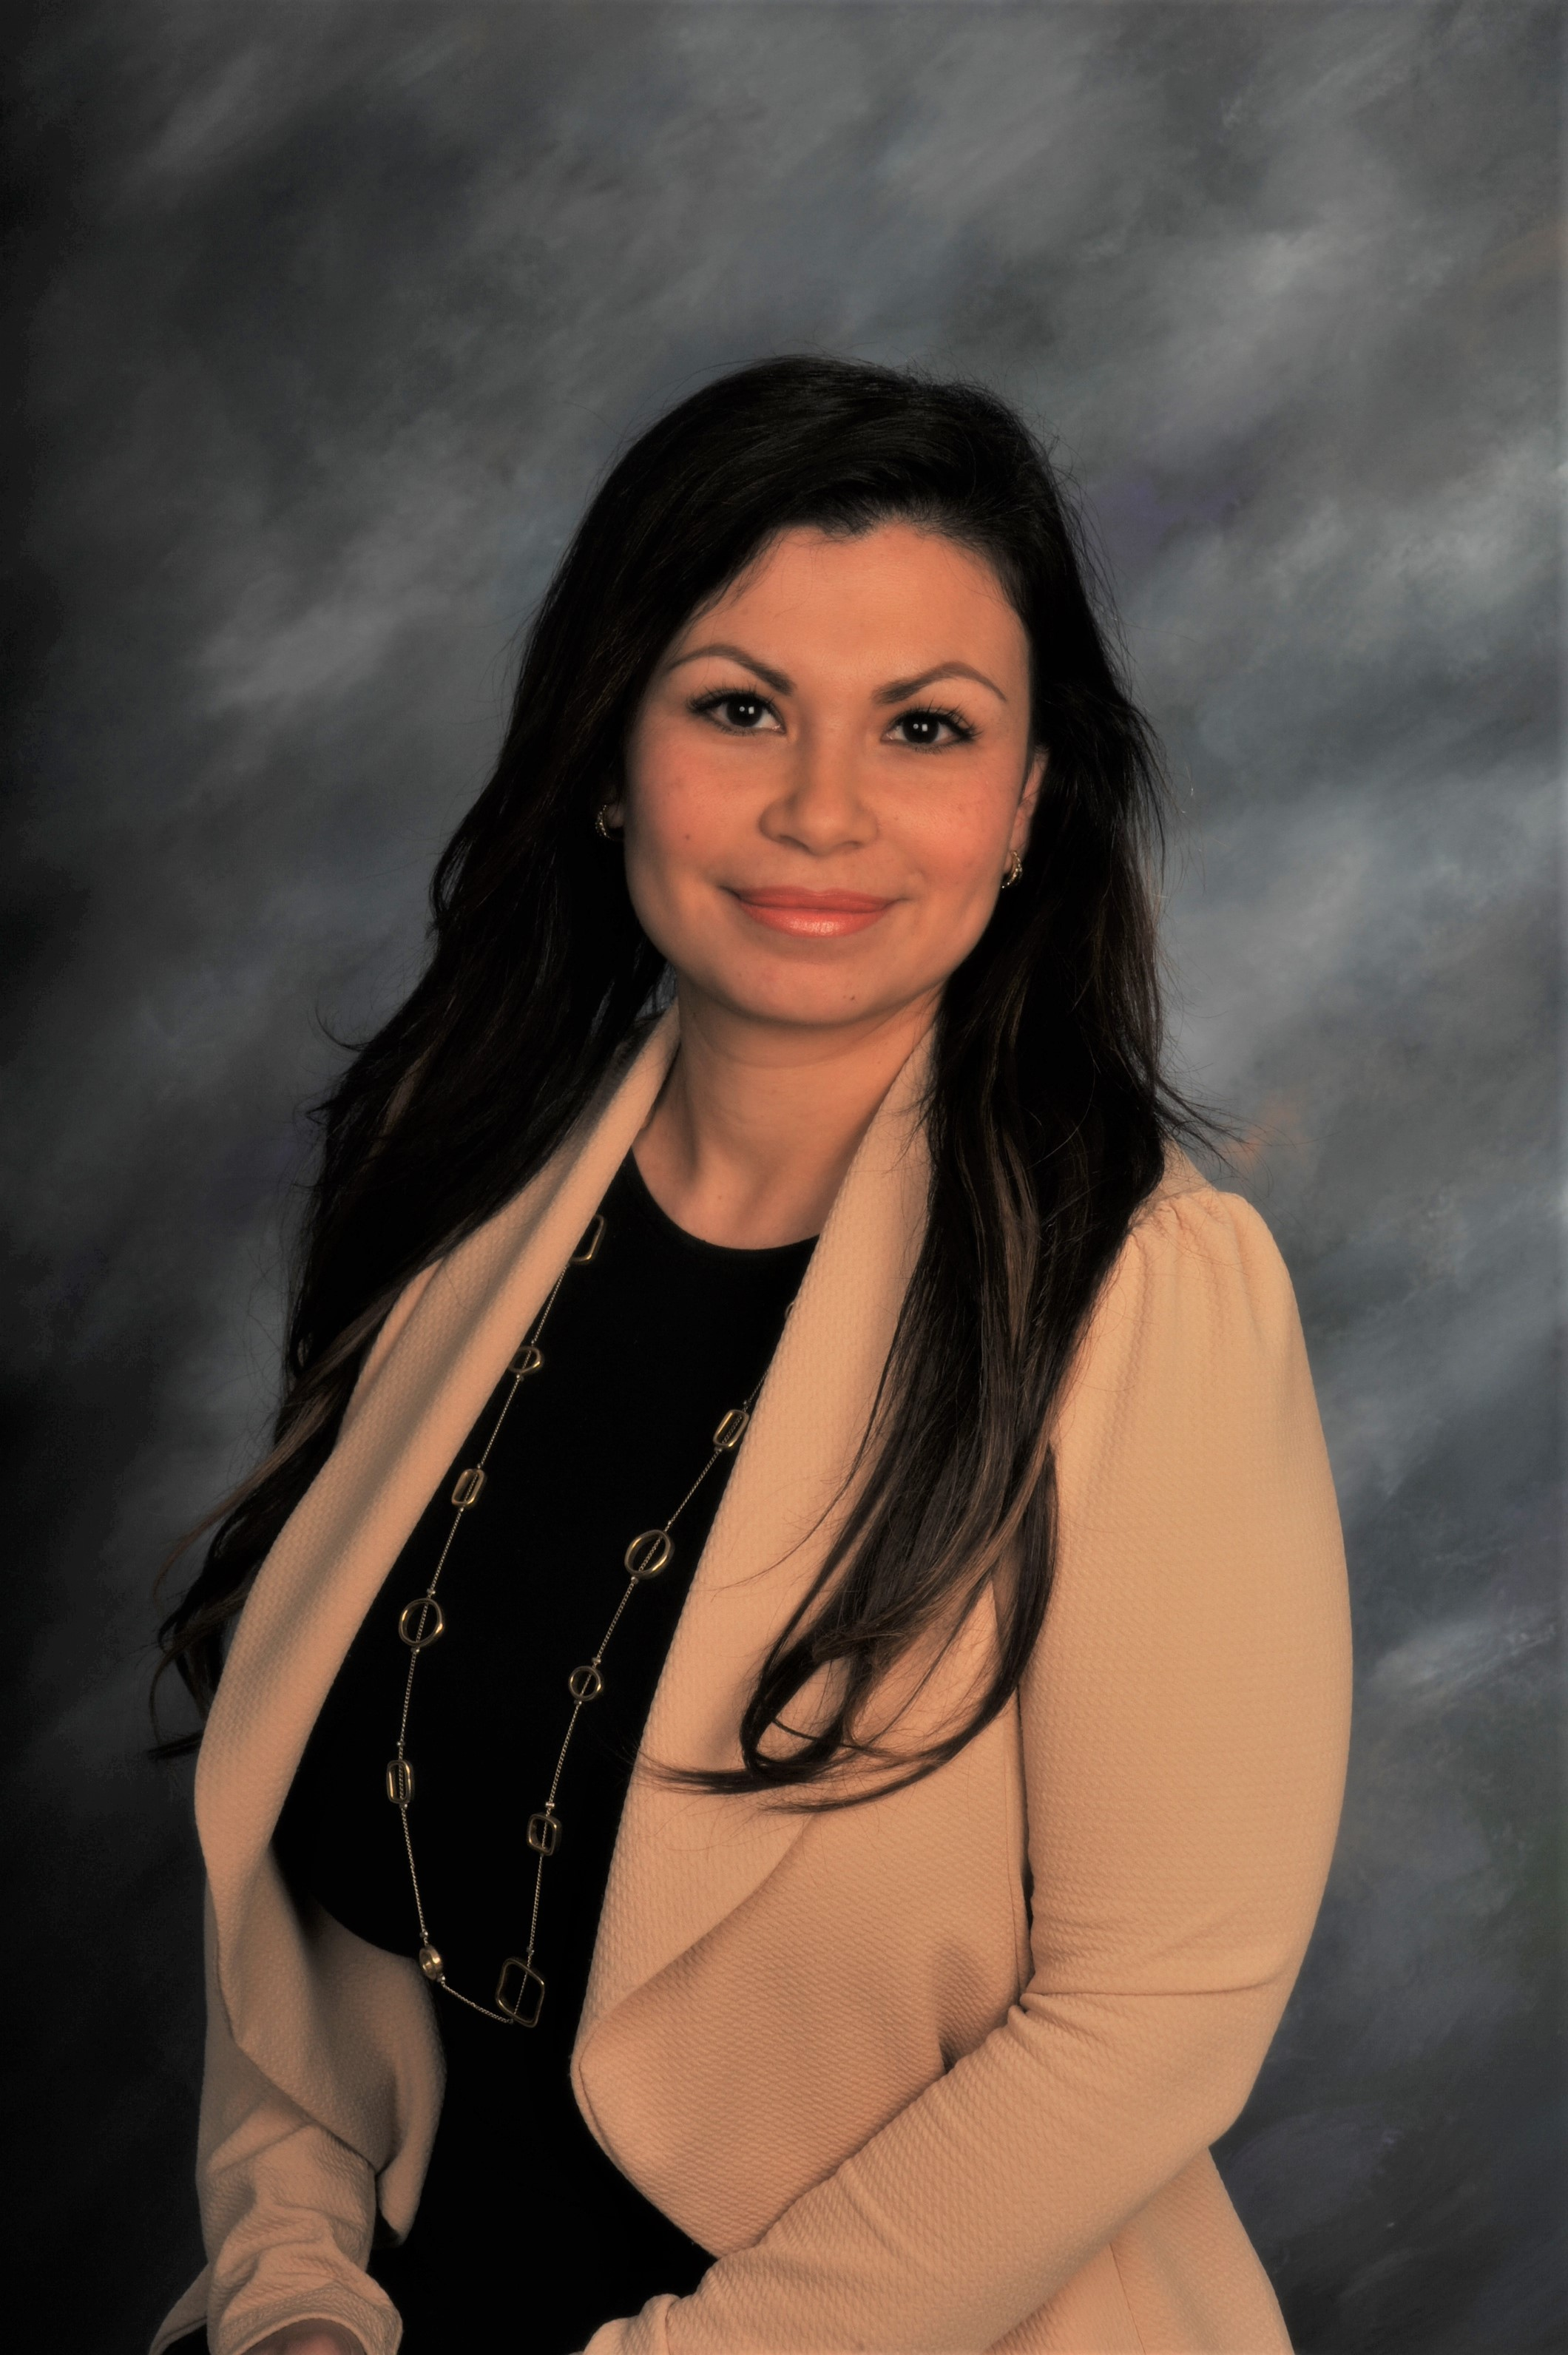 Marlene Valencia - As a Certified Insurance Counselor, Marlene has over 20 years' experience in the Insurance industry, specializing in Paratransit - Ambulatory Fleet and City Transport contracts. Marlene's collaboration and teamwork enable her to build successful client relationships, with a focus on new business, and provide clients with comprehensive policy reviews, and timely renewals.